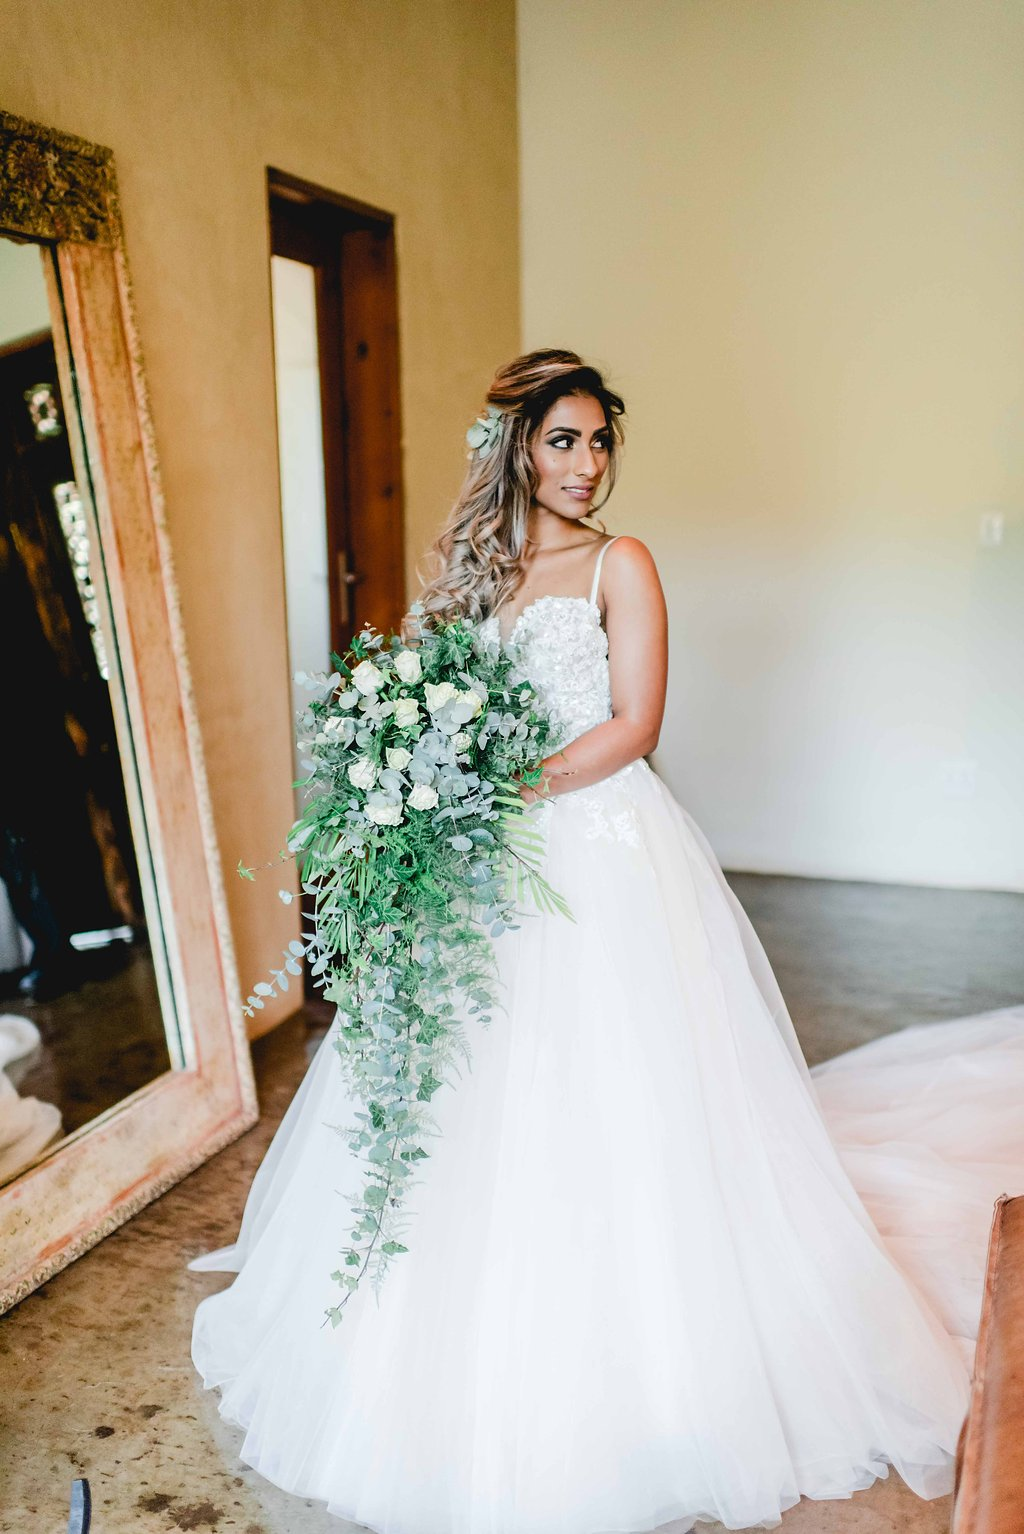 Bride with Cascade Greenery Bouquet | Image: Carla Adel